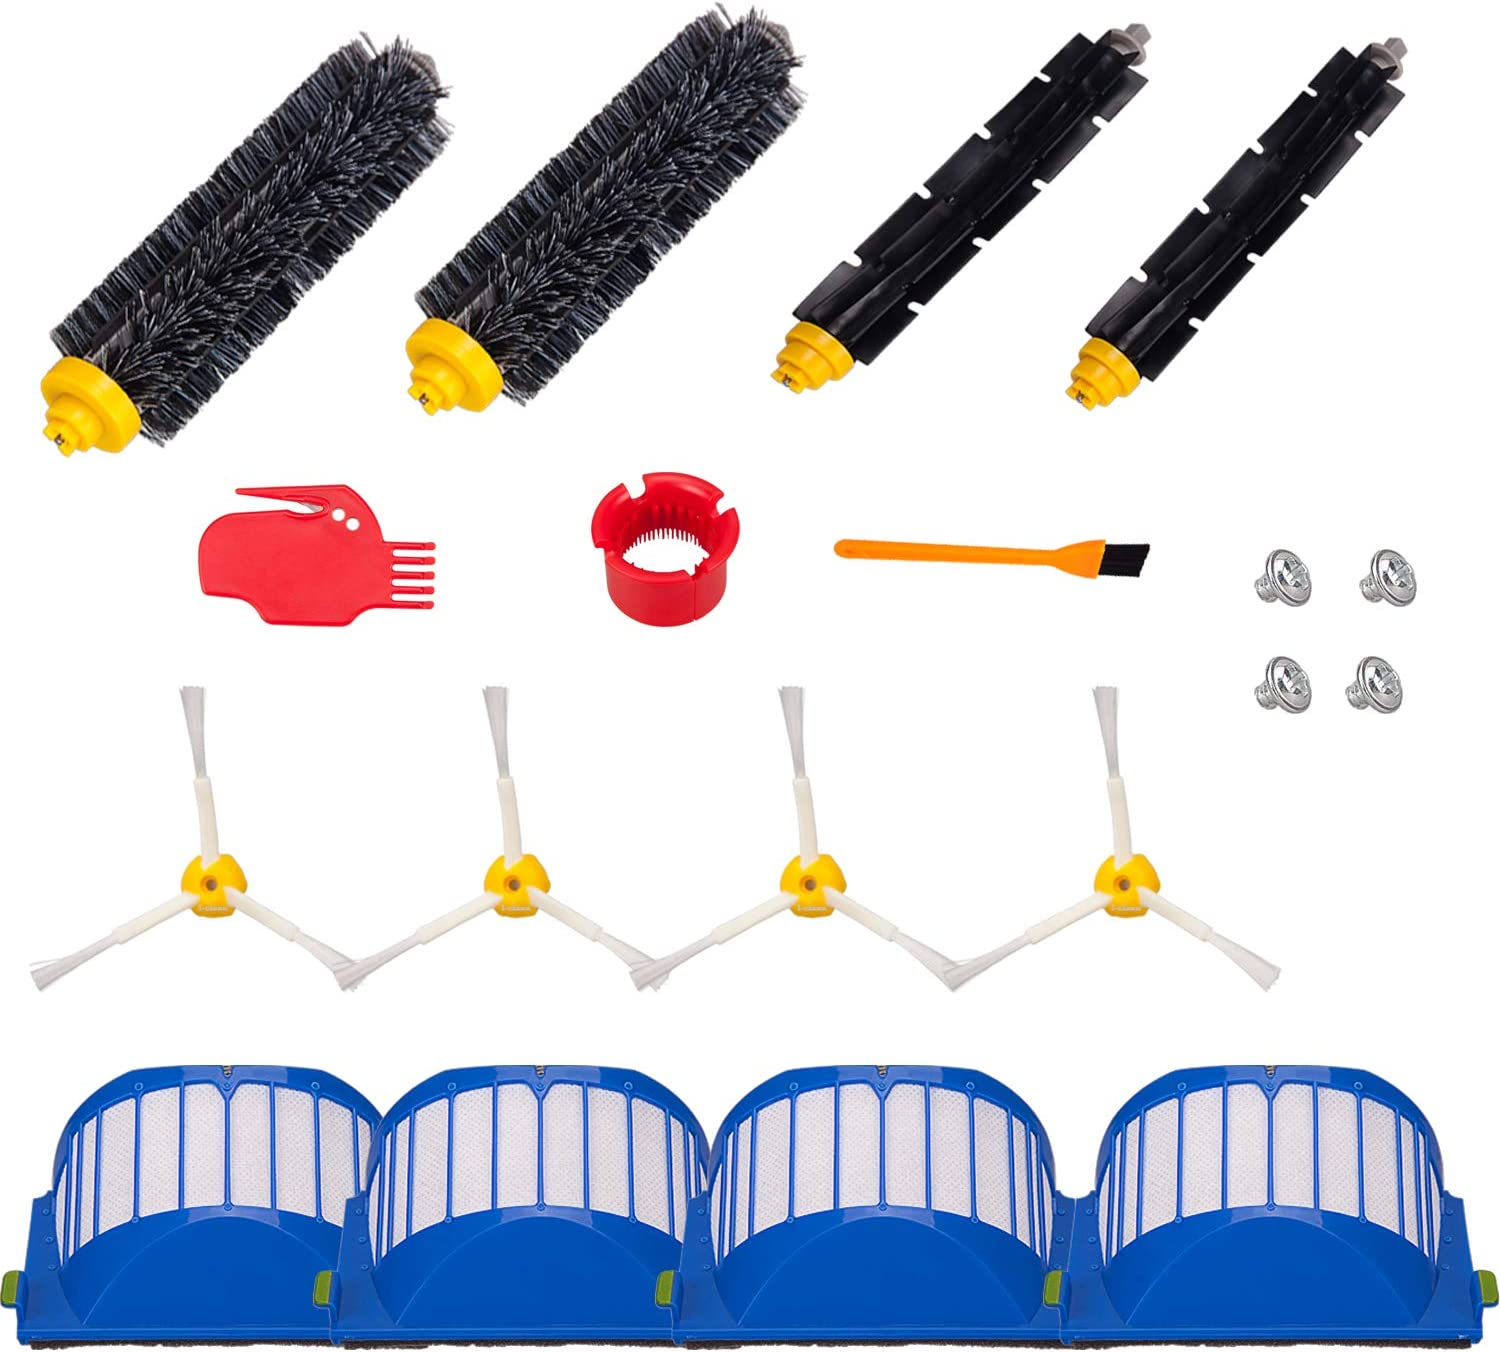 Hongfa Replacement Roomba 690 650 Parts,Replenishment Kit Parts for Roomba 680 650 660 651 614 652 and 500 Series 595 585 564,Included Side Brush,Bristle Brush and Flexible Brush